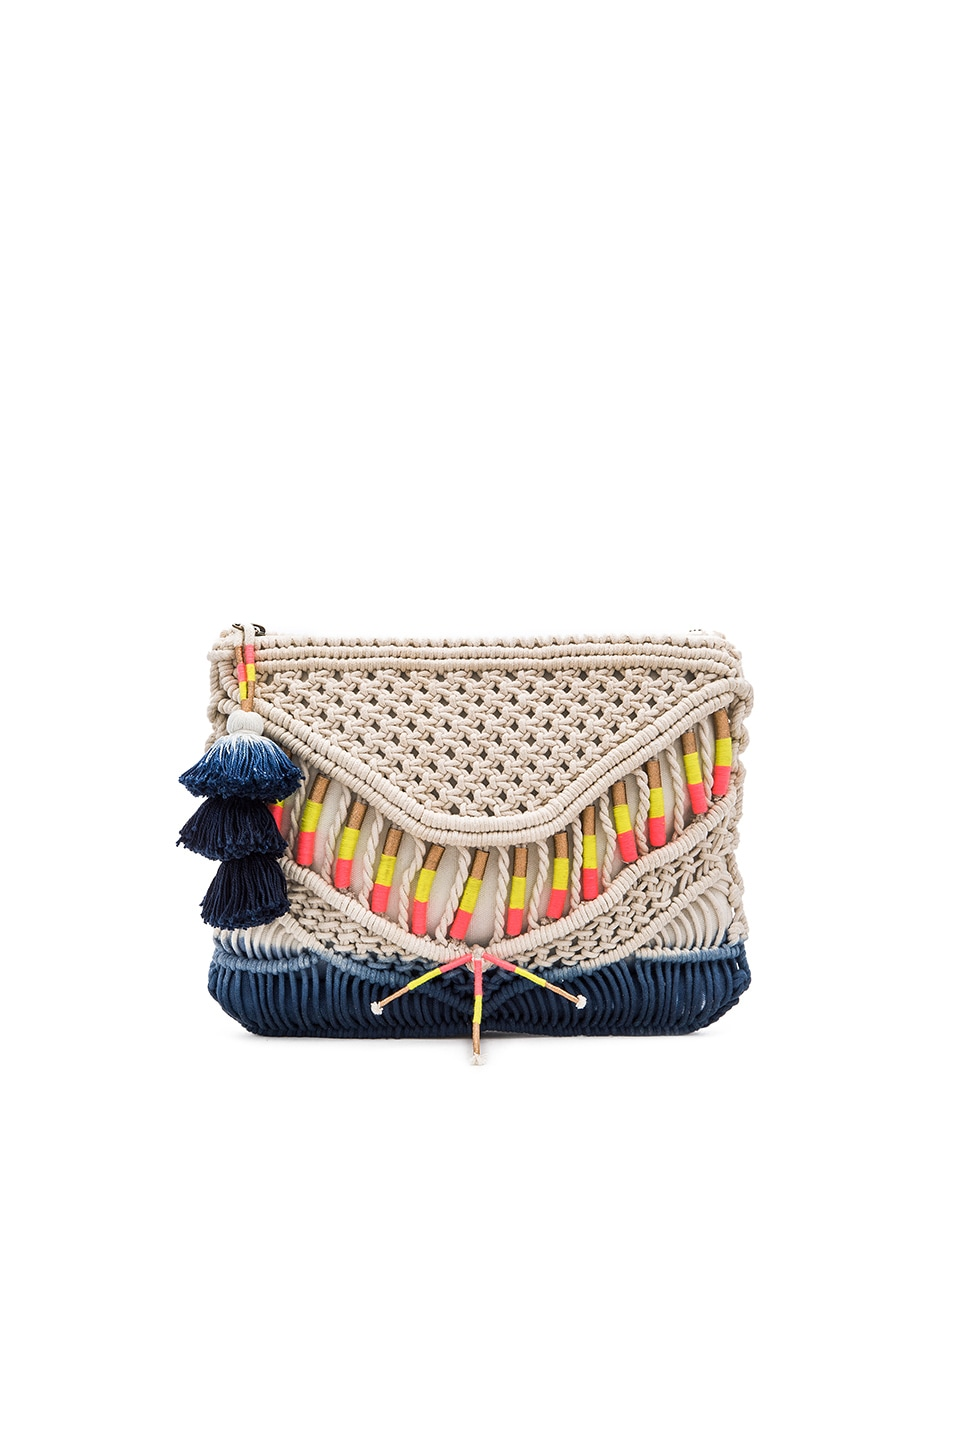 Cleobella Dreamers Clutch in Macrame